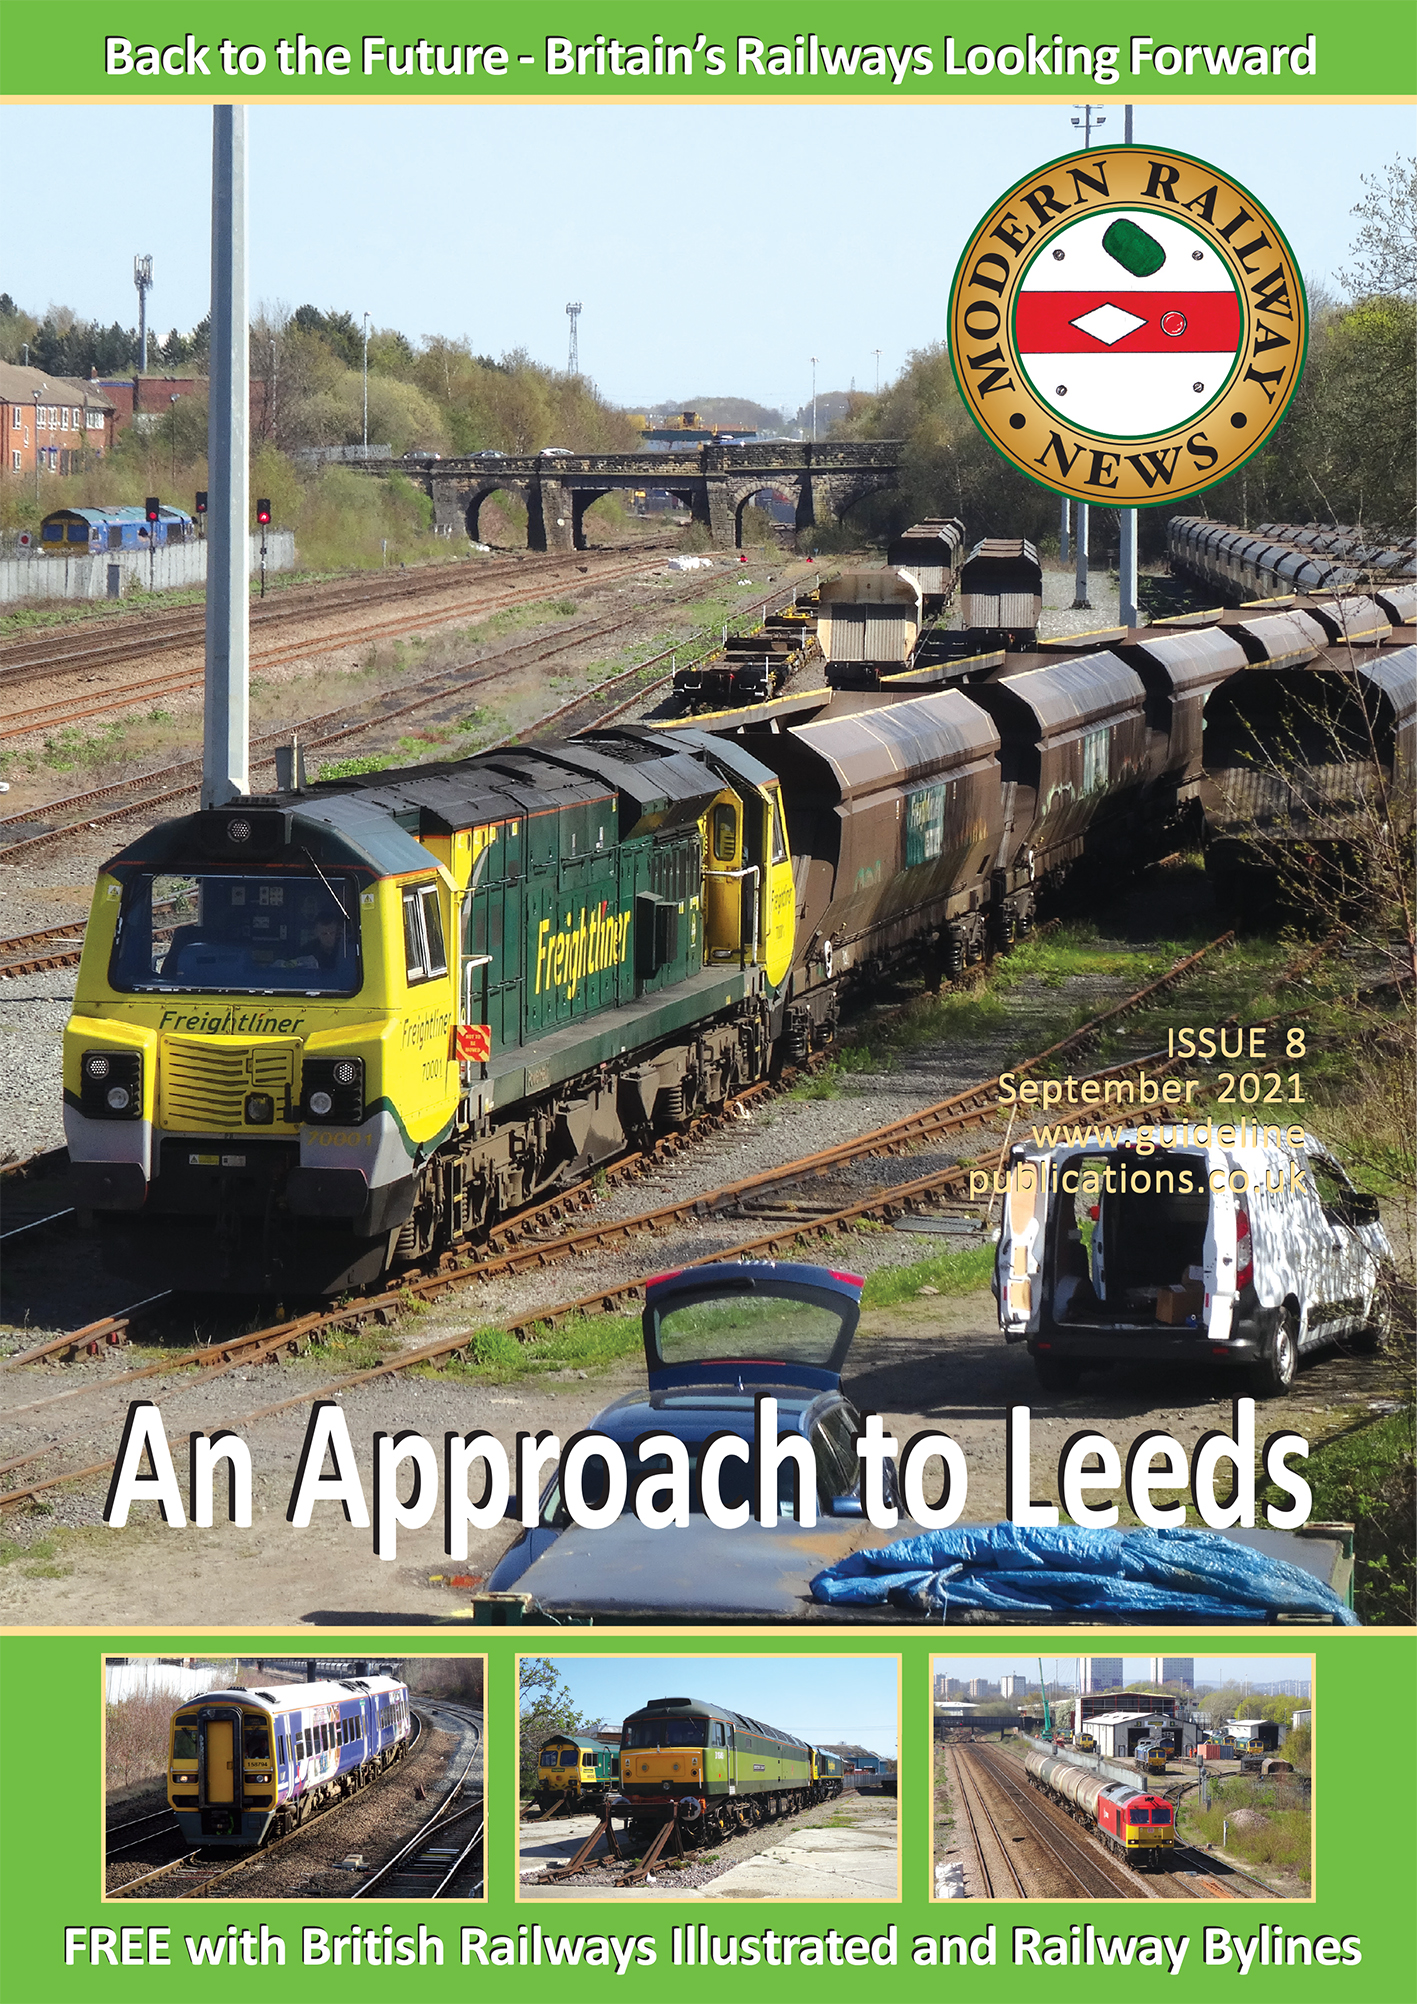 Guideline Publications Model Railway News September Issue 10 Sept 2020